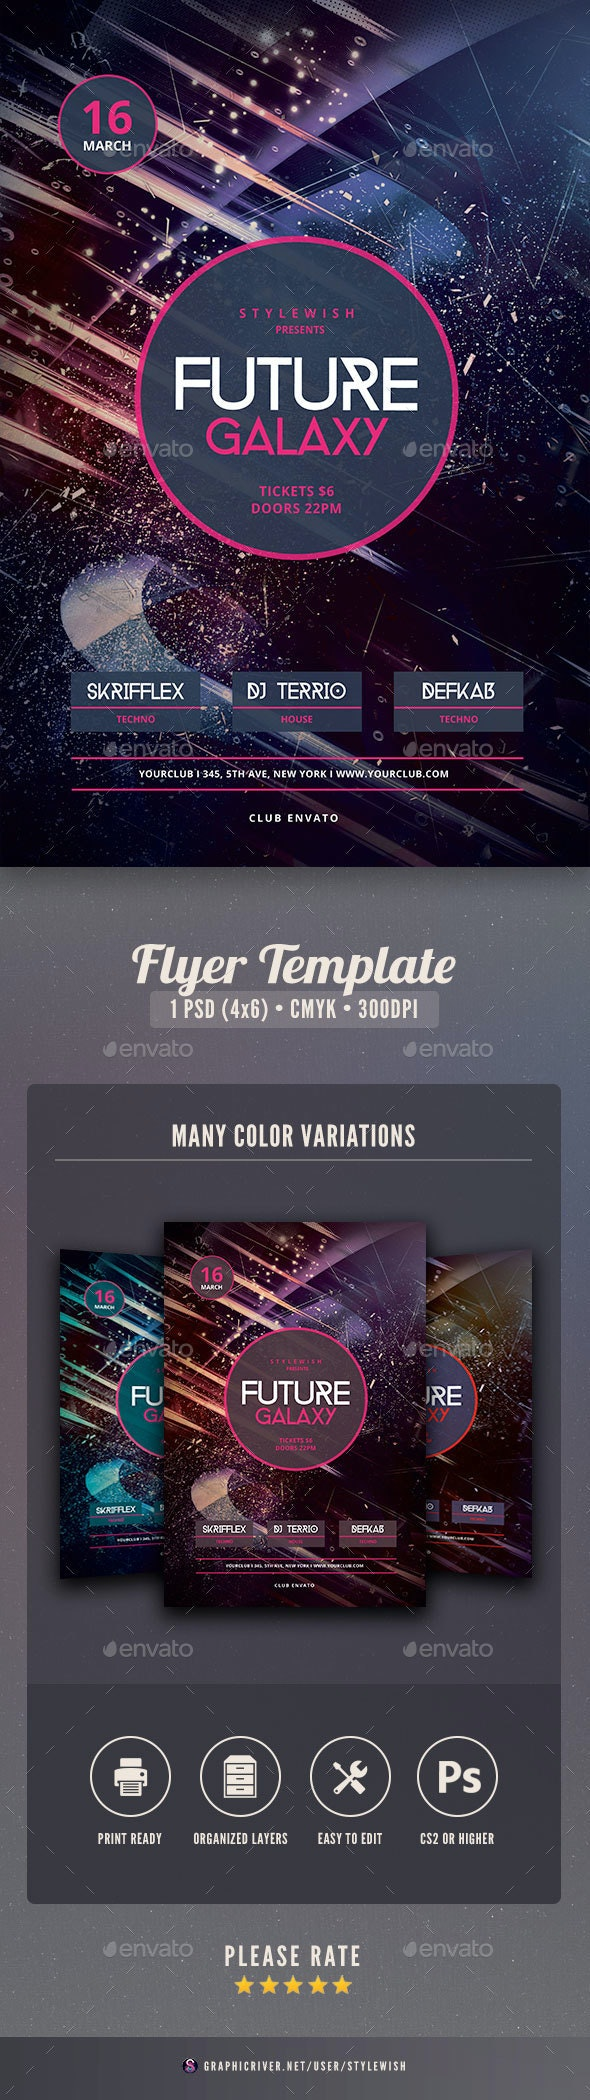 Future Galaxy Flyer - Clubs & Parties Events